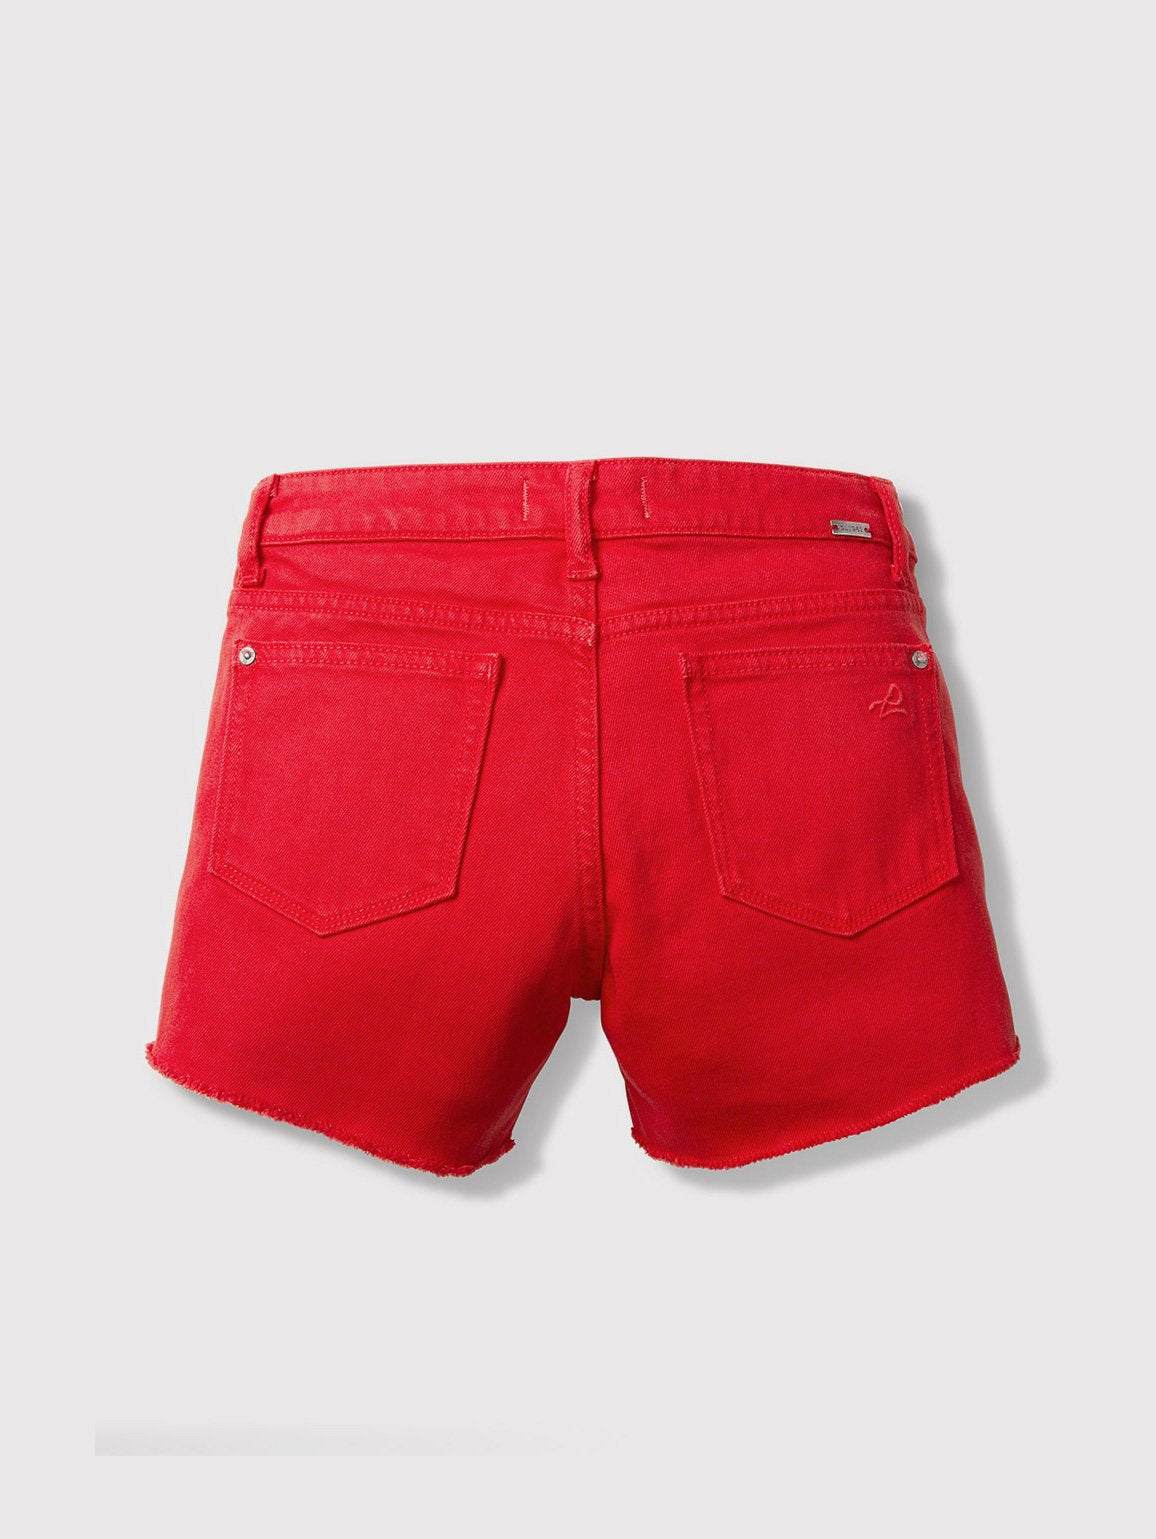 Girls - Bright Red Denim Shorts - Lucy/G Short Berry - DL1961